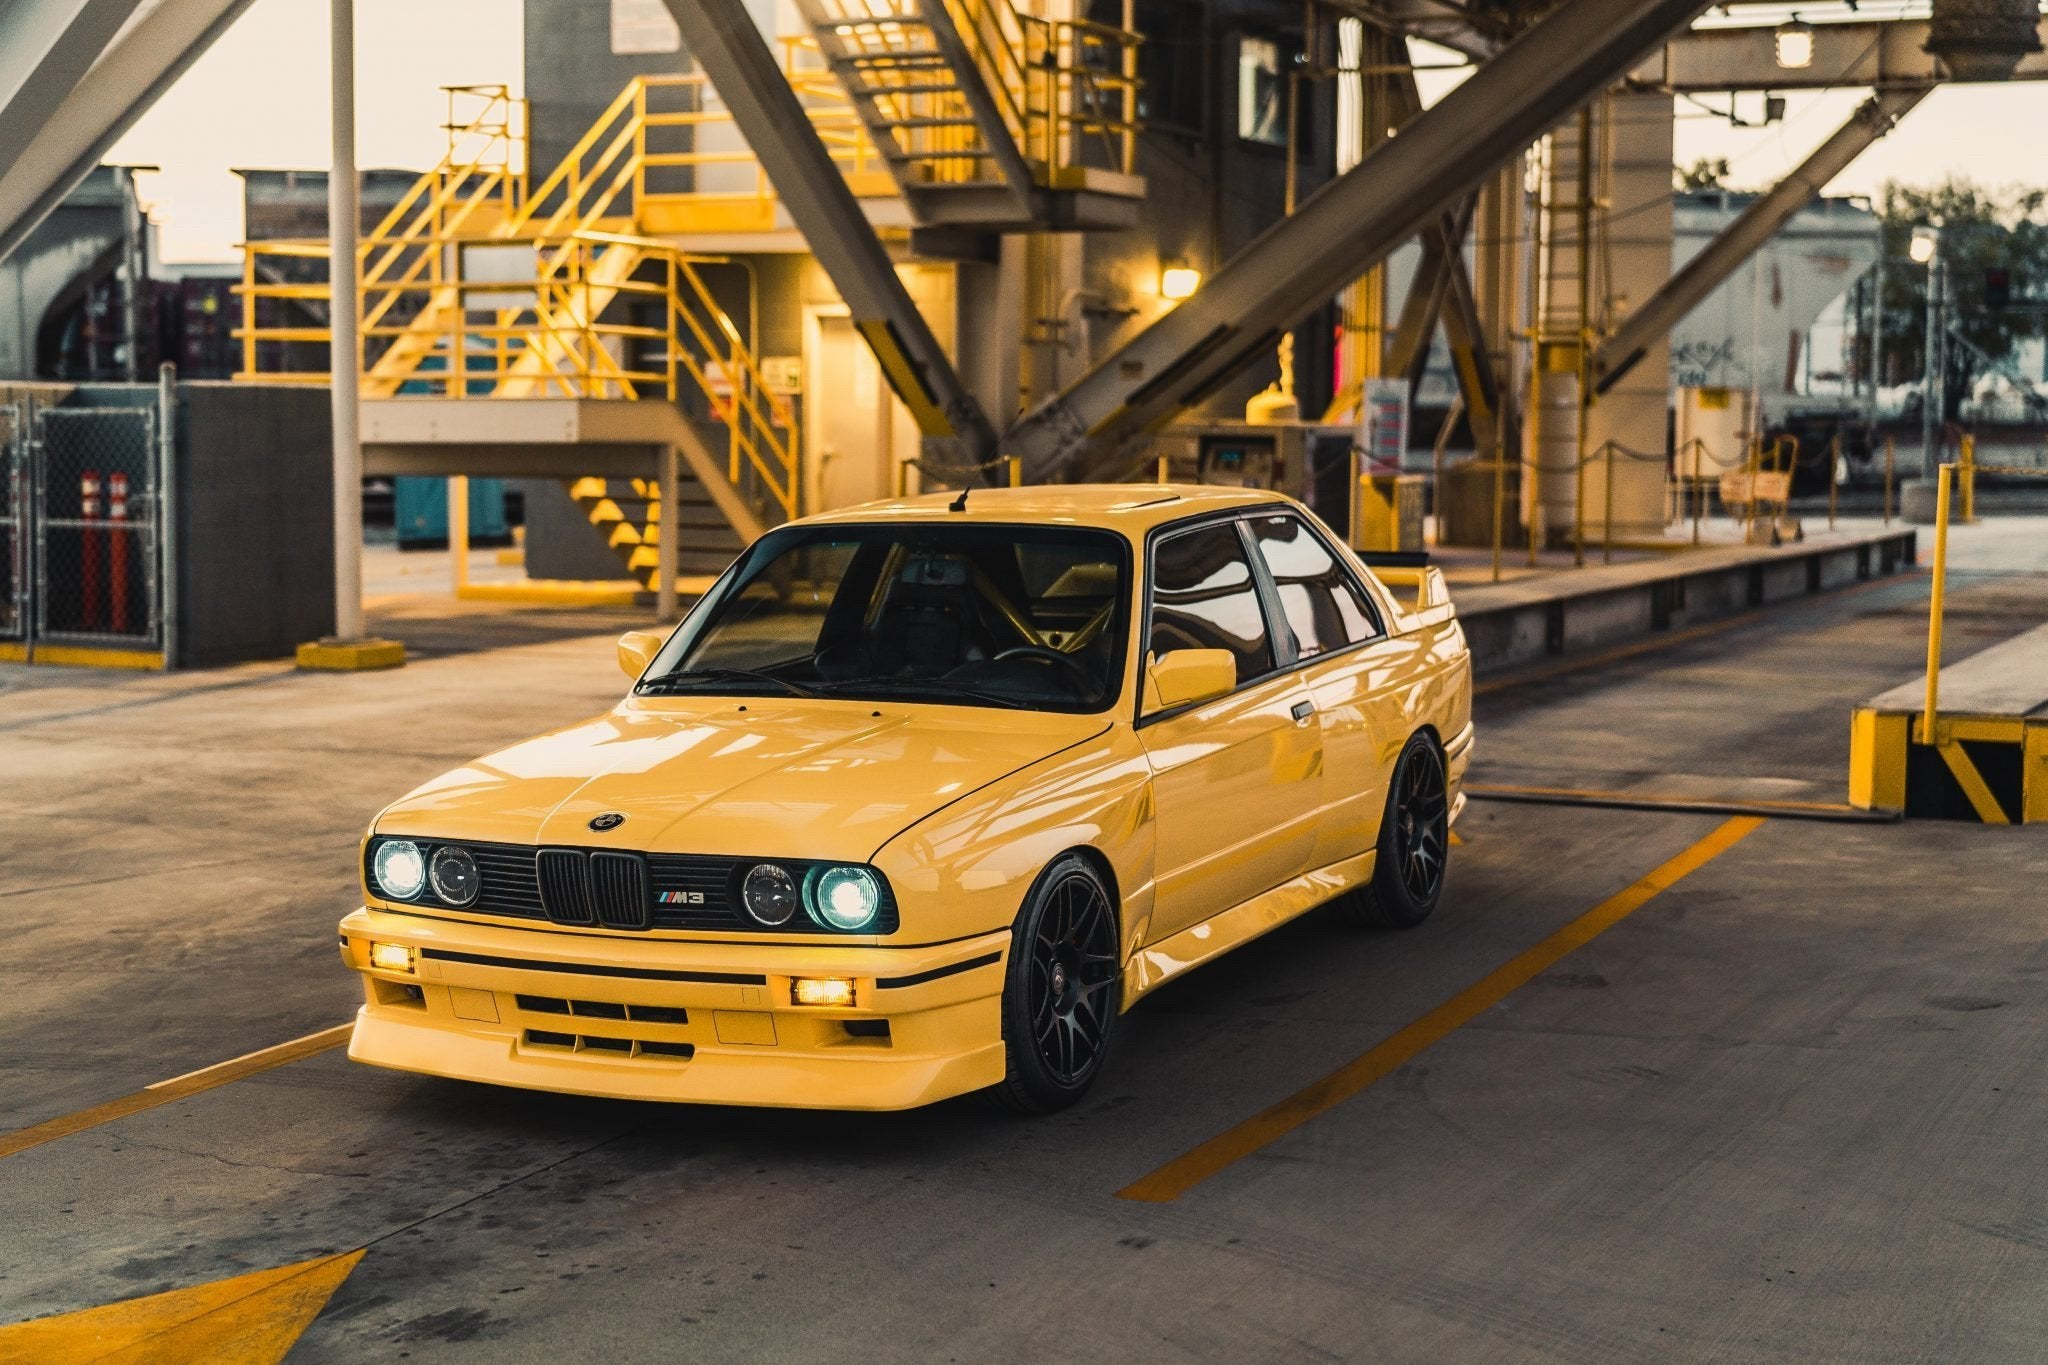 M3 E30 with S50 B32 engine (the 6L of the E36 M3)